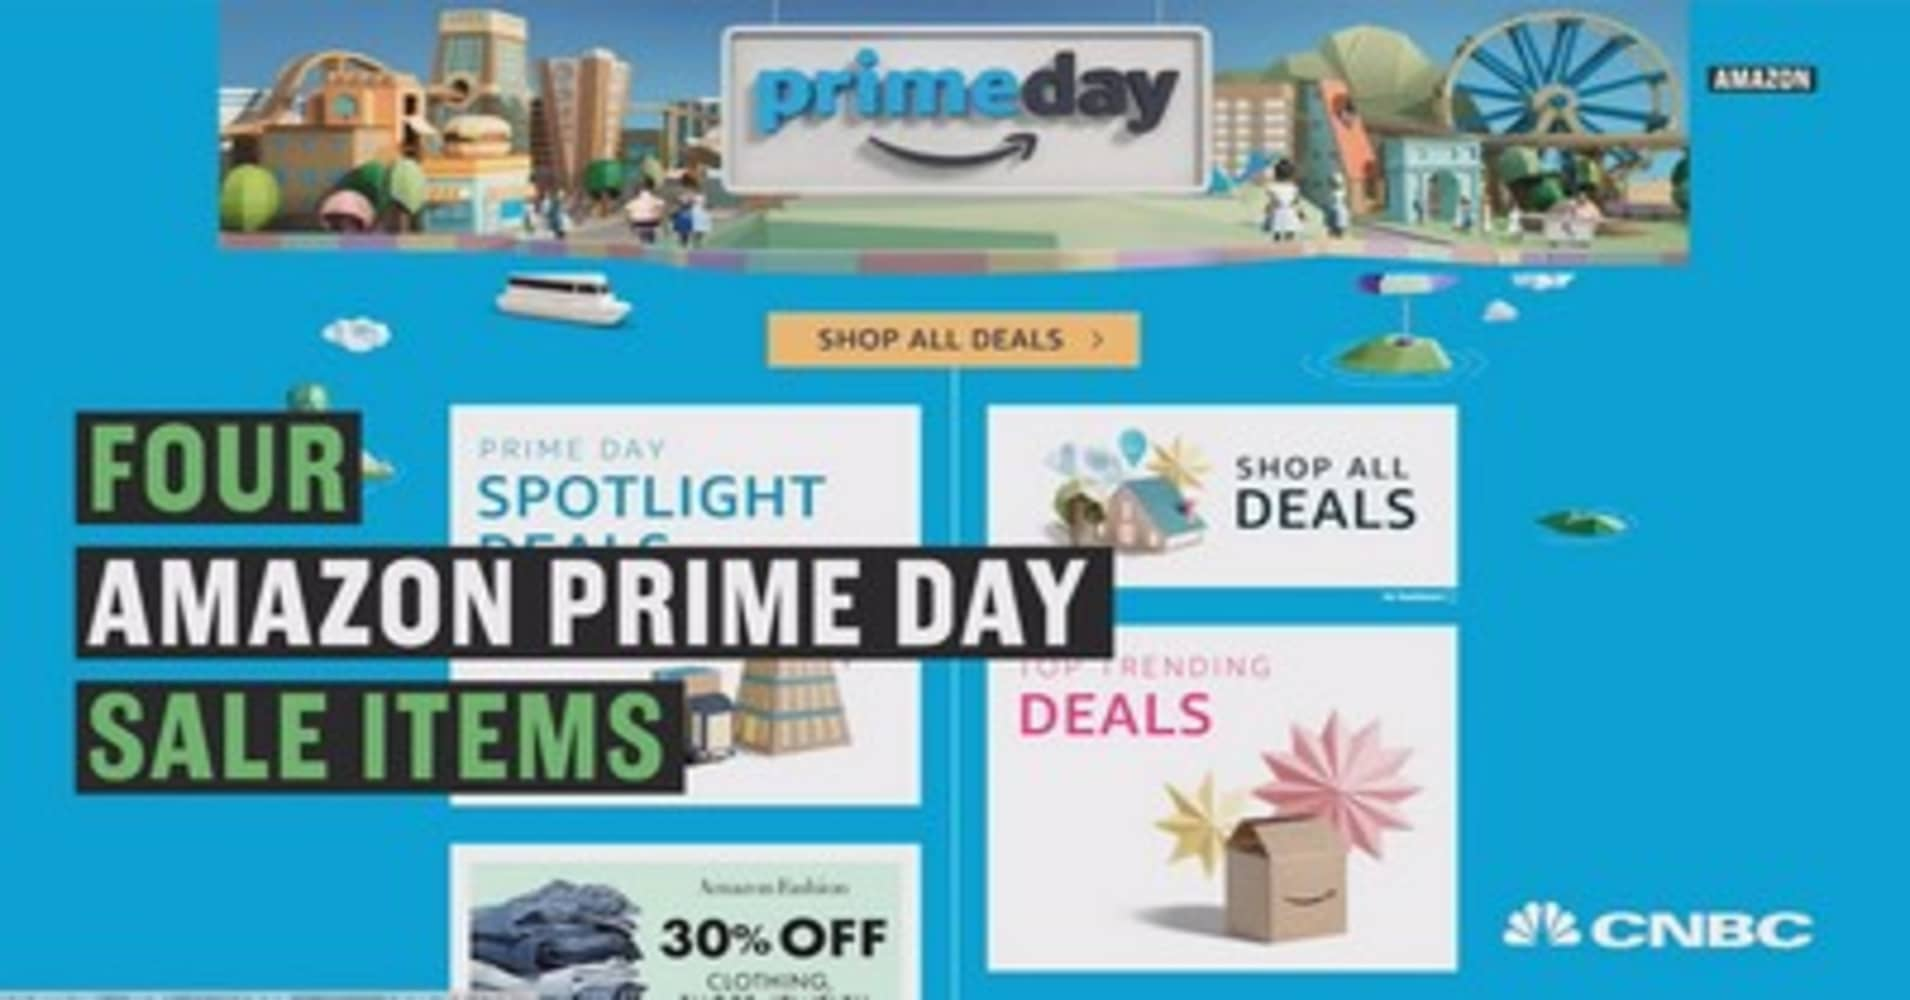 Four awesome amazon prime day sale items